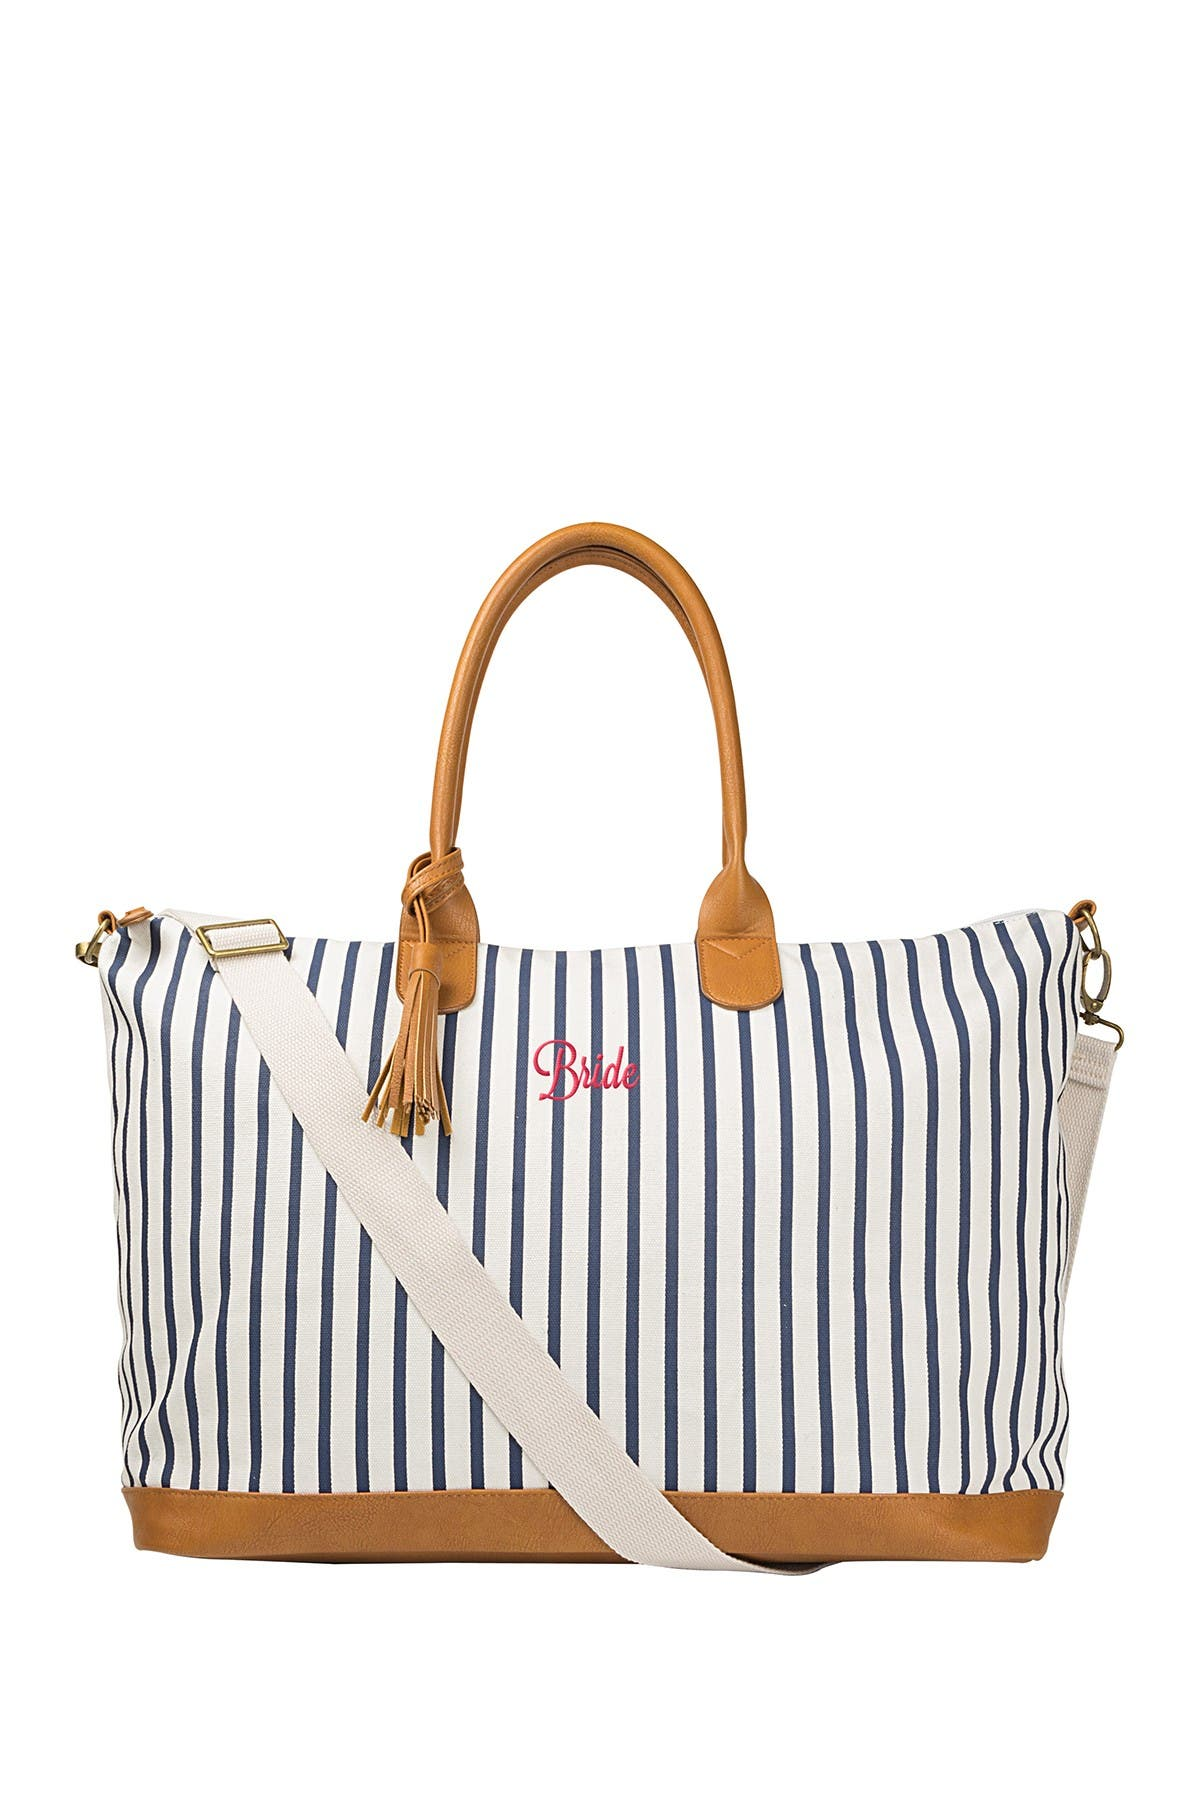 Image of Cathy's Concepts Bride Striped Weekend Tote